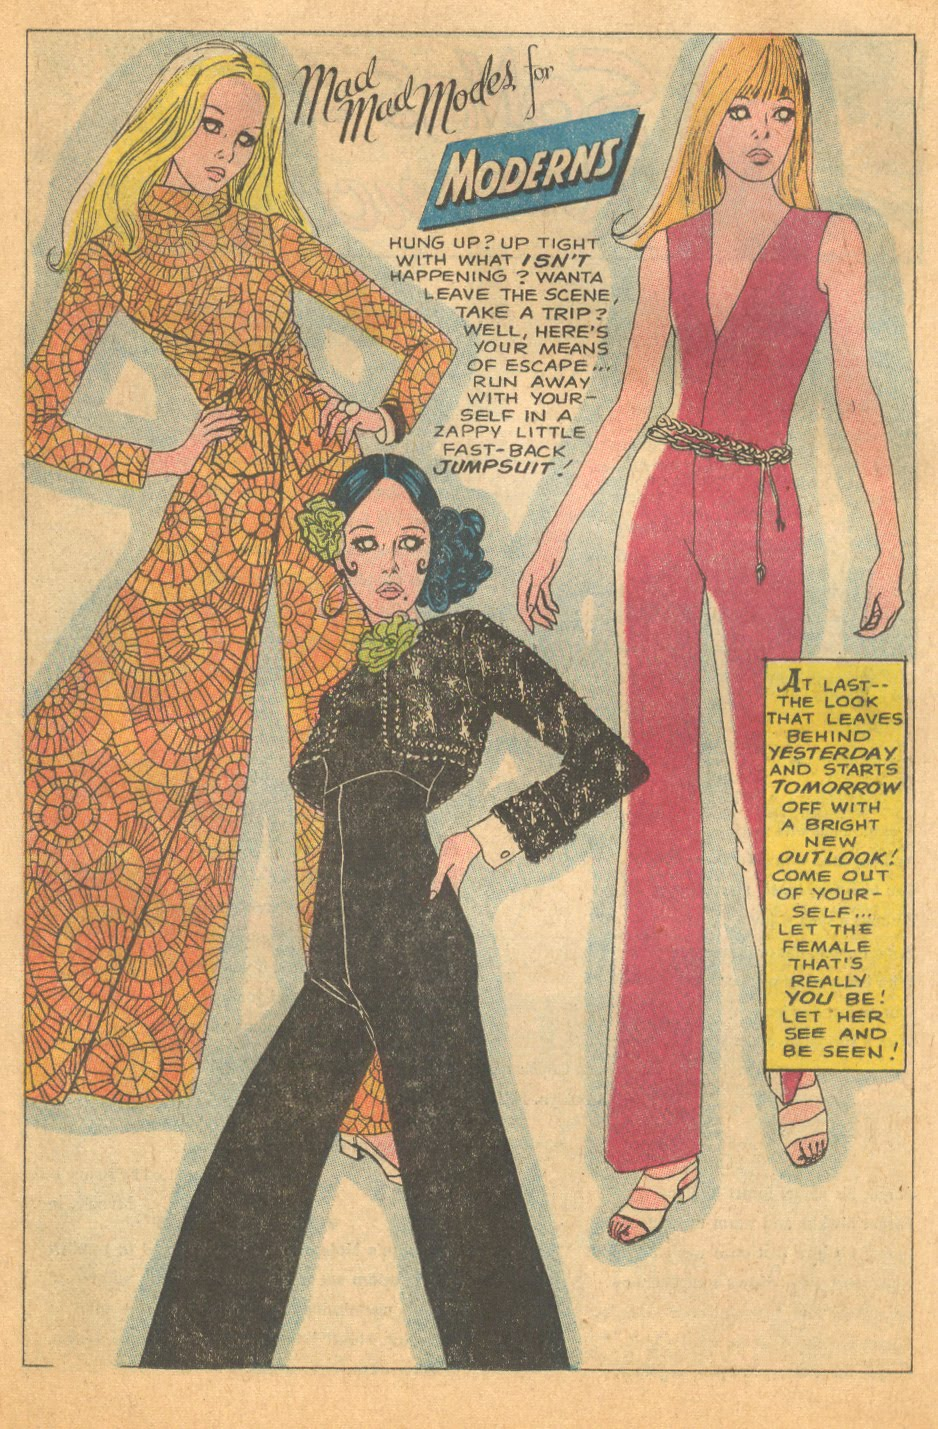 1969 year of the jumpsuit fashion icon illustration romance comic books